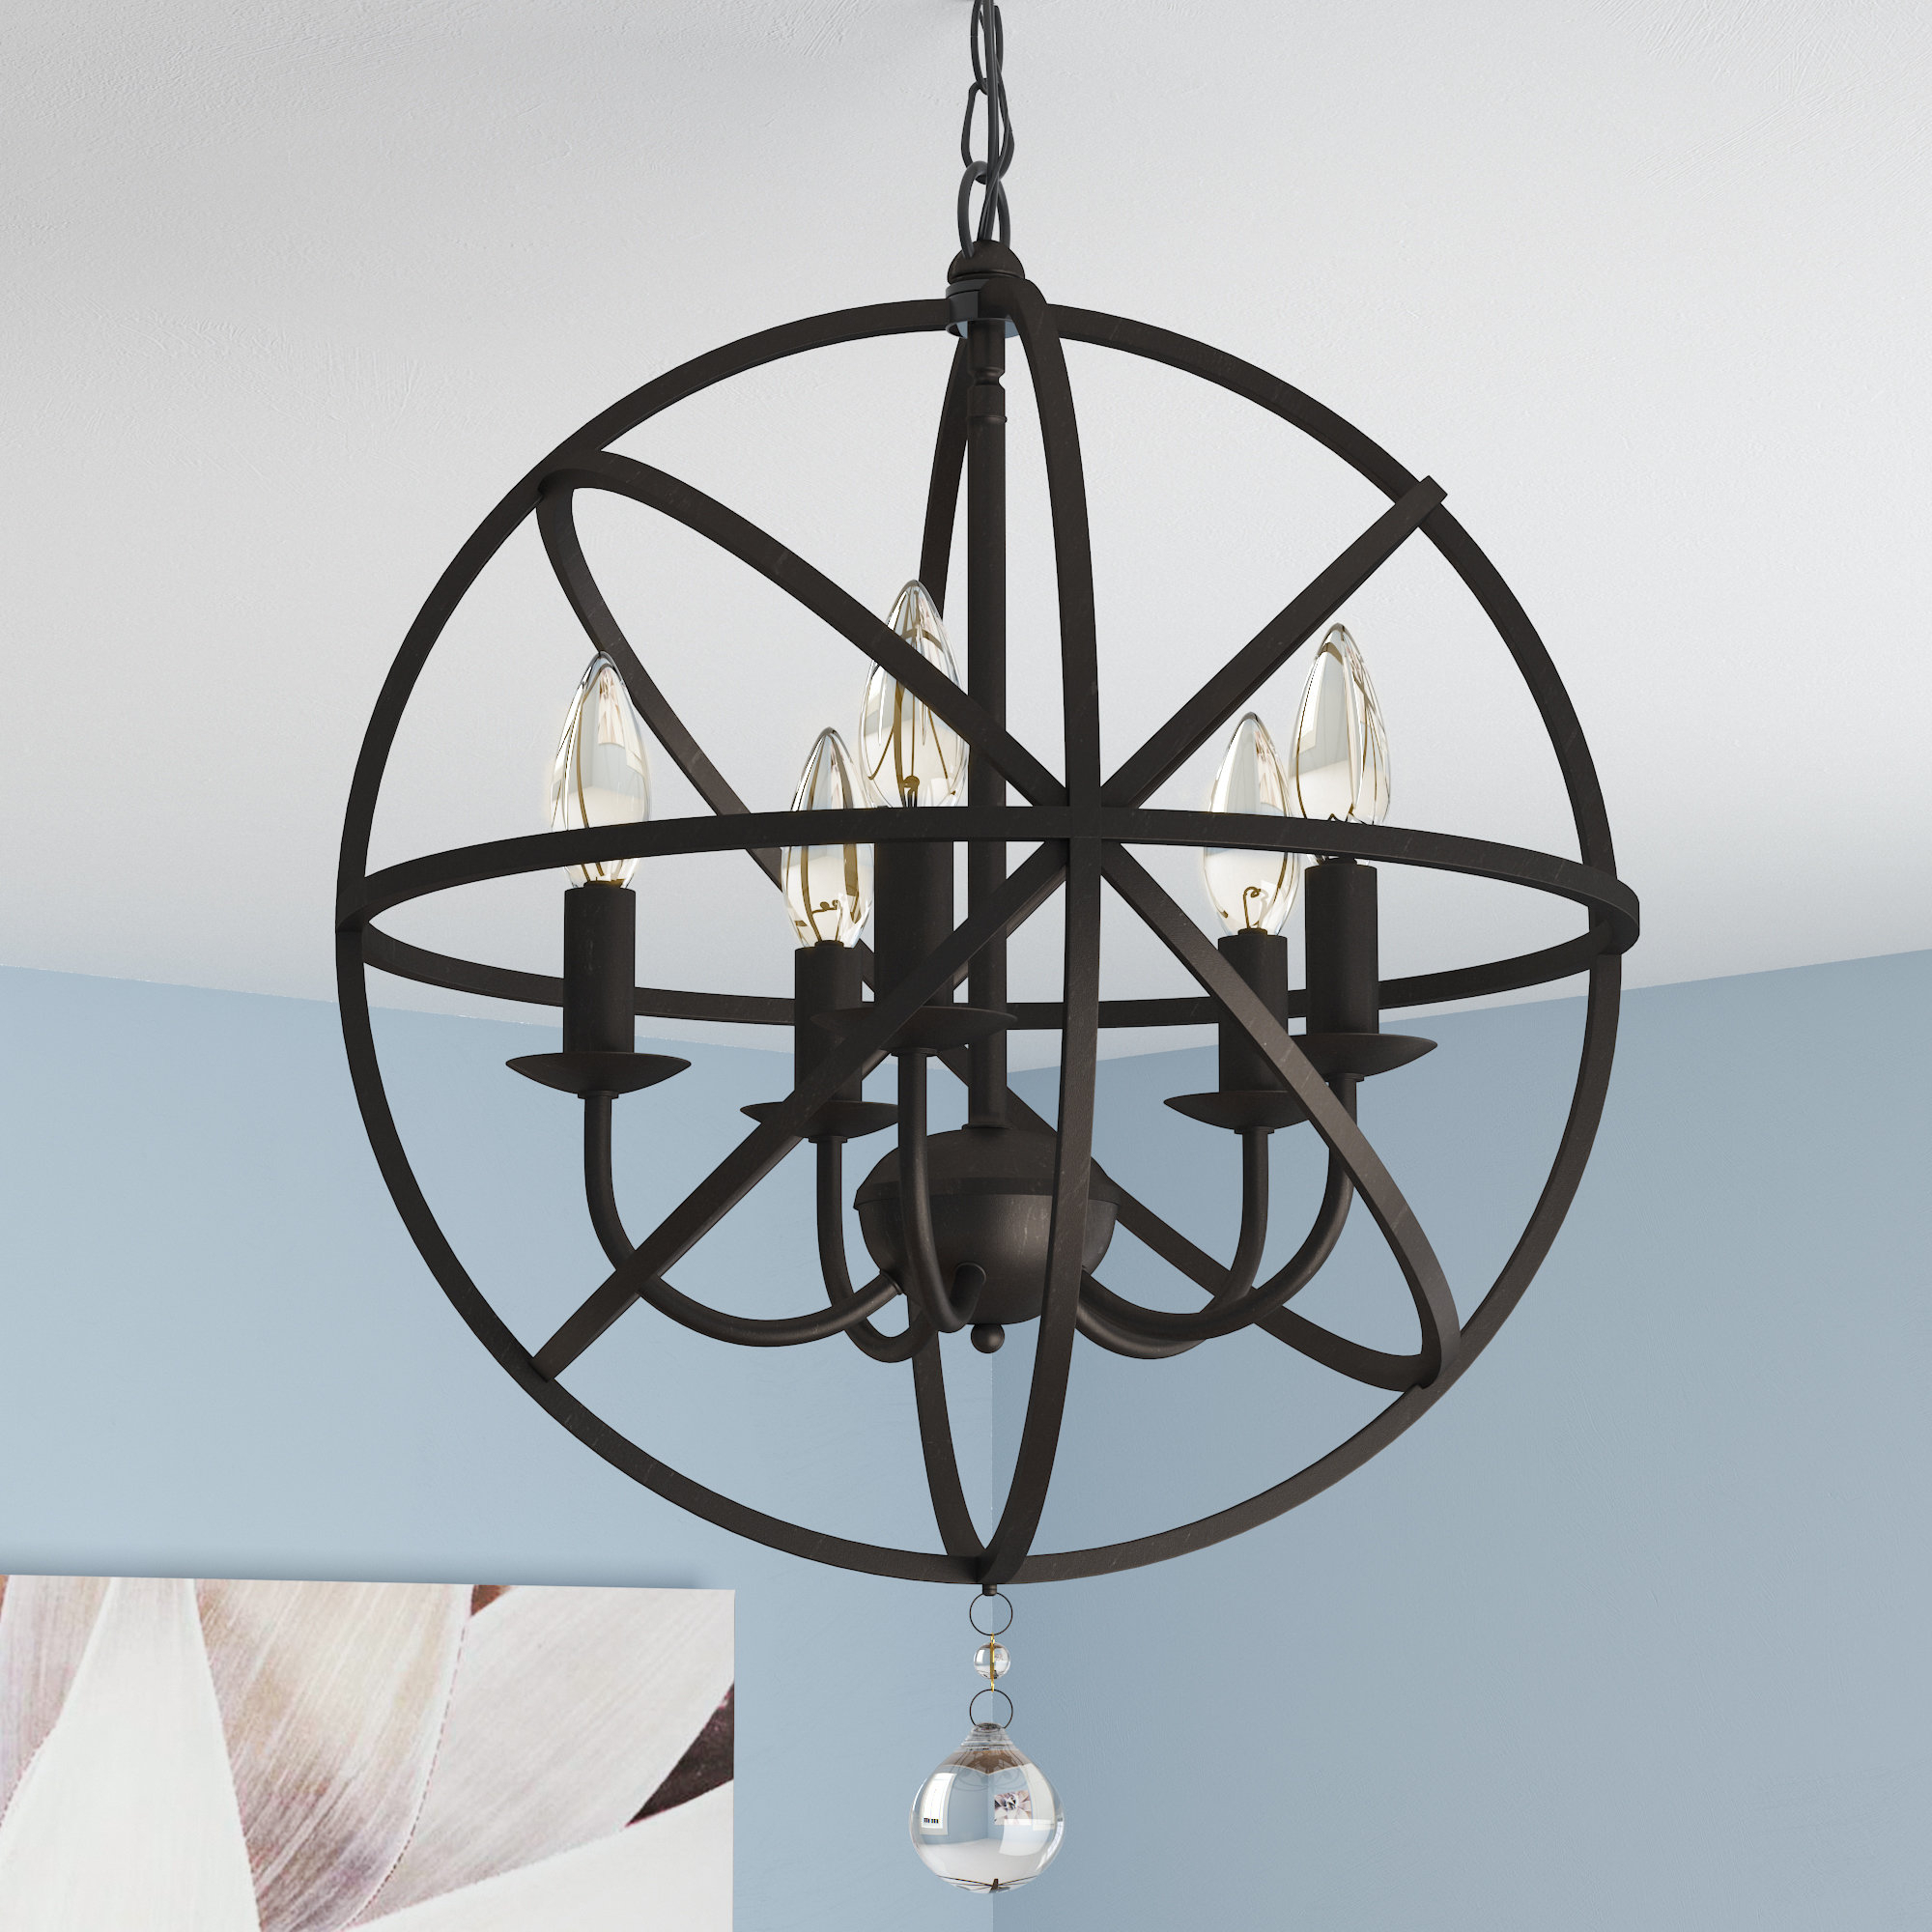 Well Liked Verlene Foyer 5 Light Globe Chandelier Regarding Verlene Foyer 5 Light Globe Chandeliers (Gallery 2 of 20)